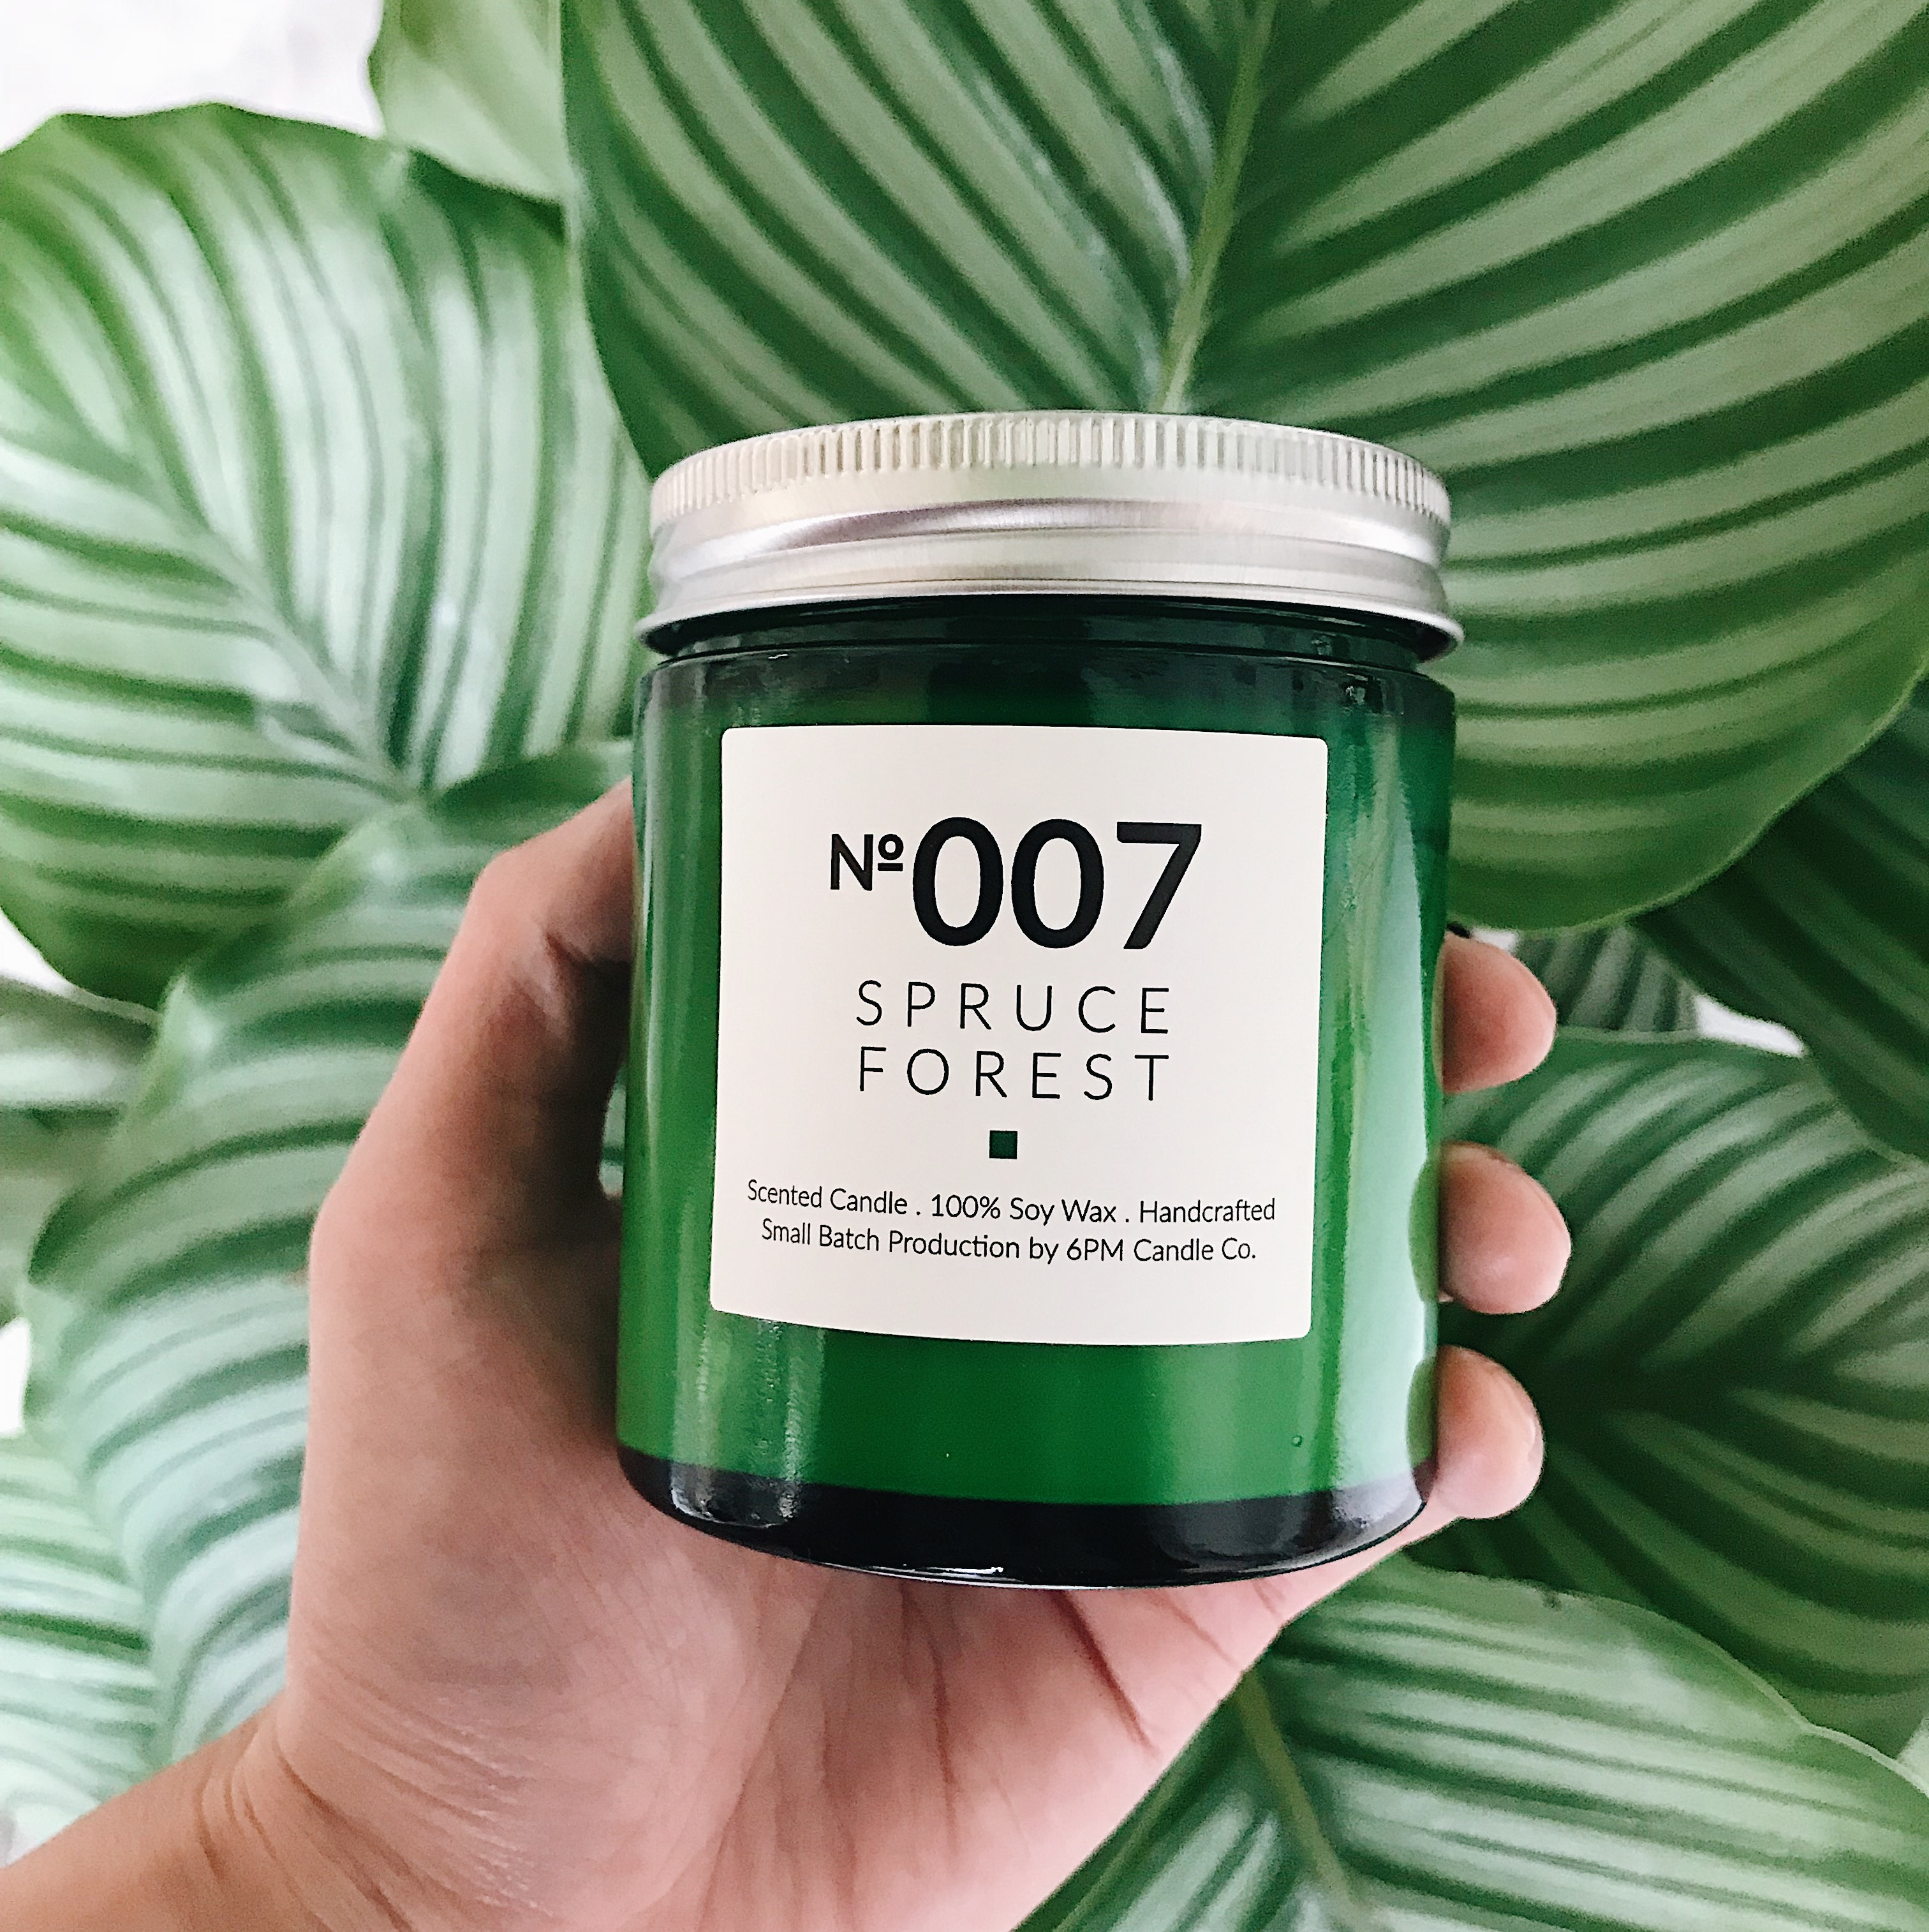 6PM Candle Co small Firefly green bottle natural organic soy wax scented  candle interior fragrance